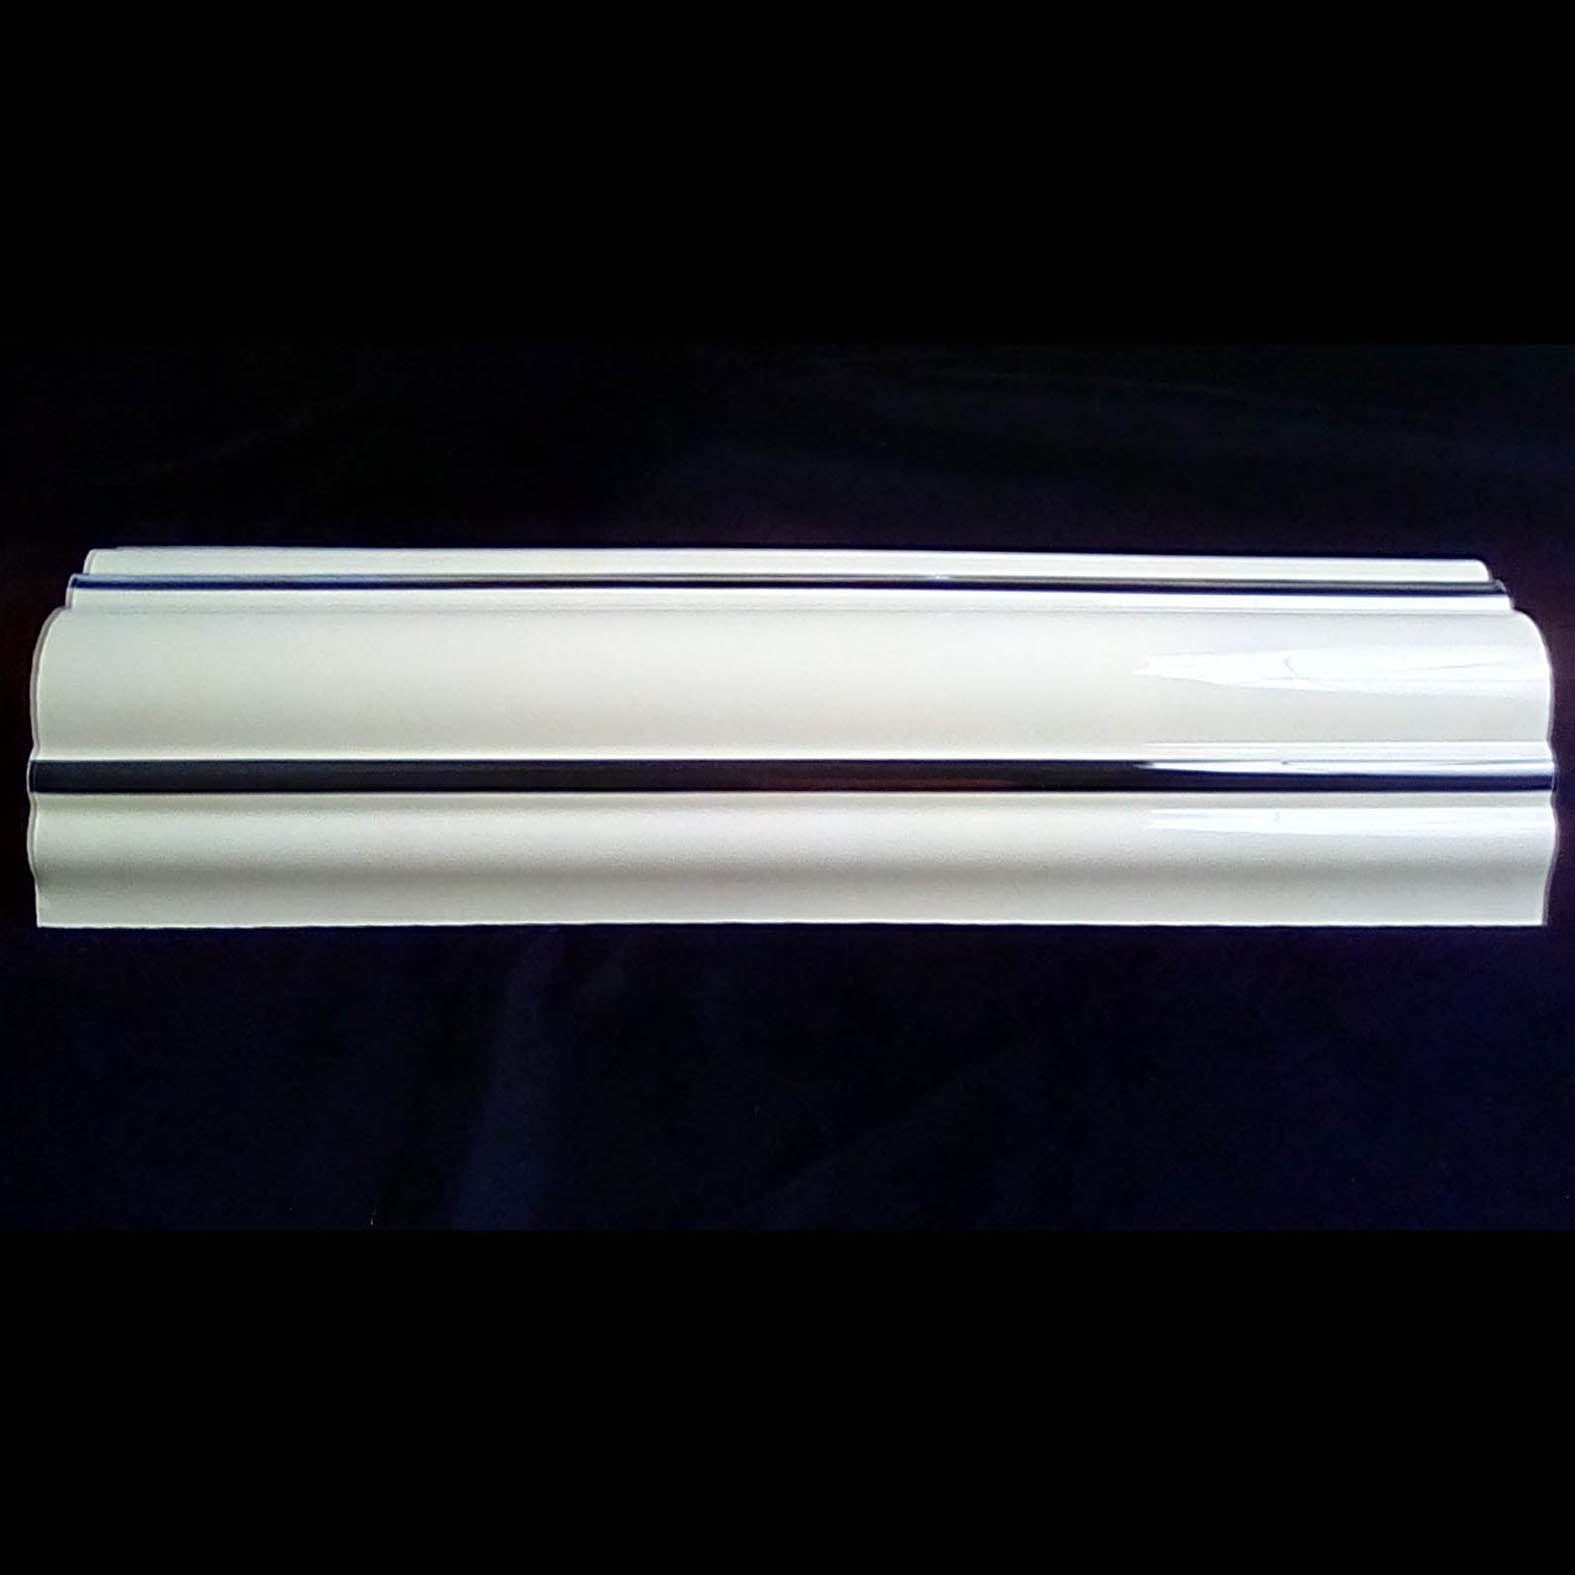 Rock-Ola Jukebox Outer Pilaster Cream Plastic Straight